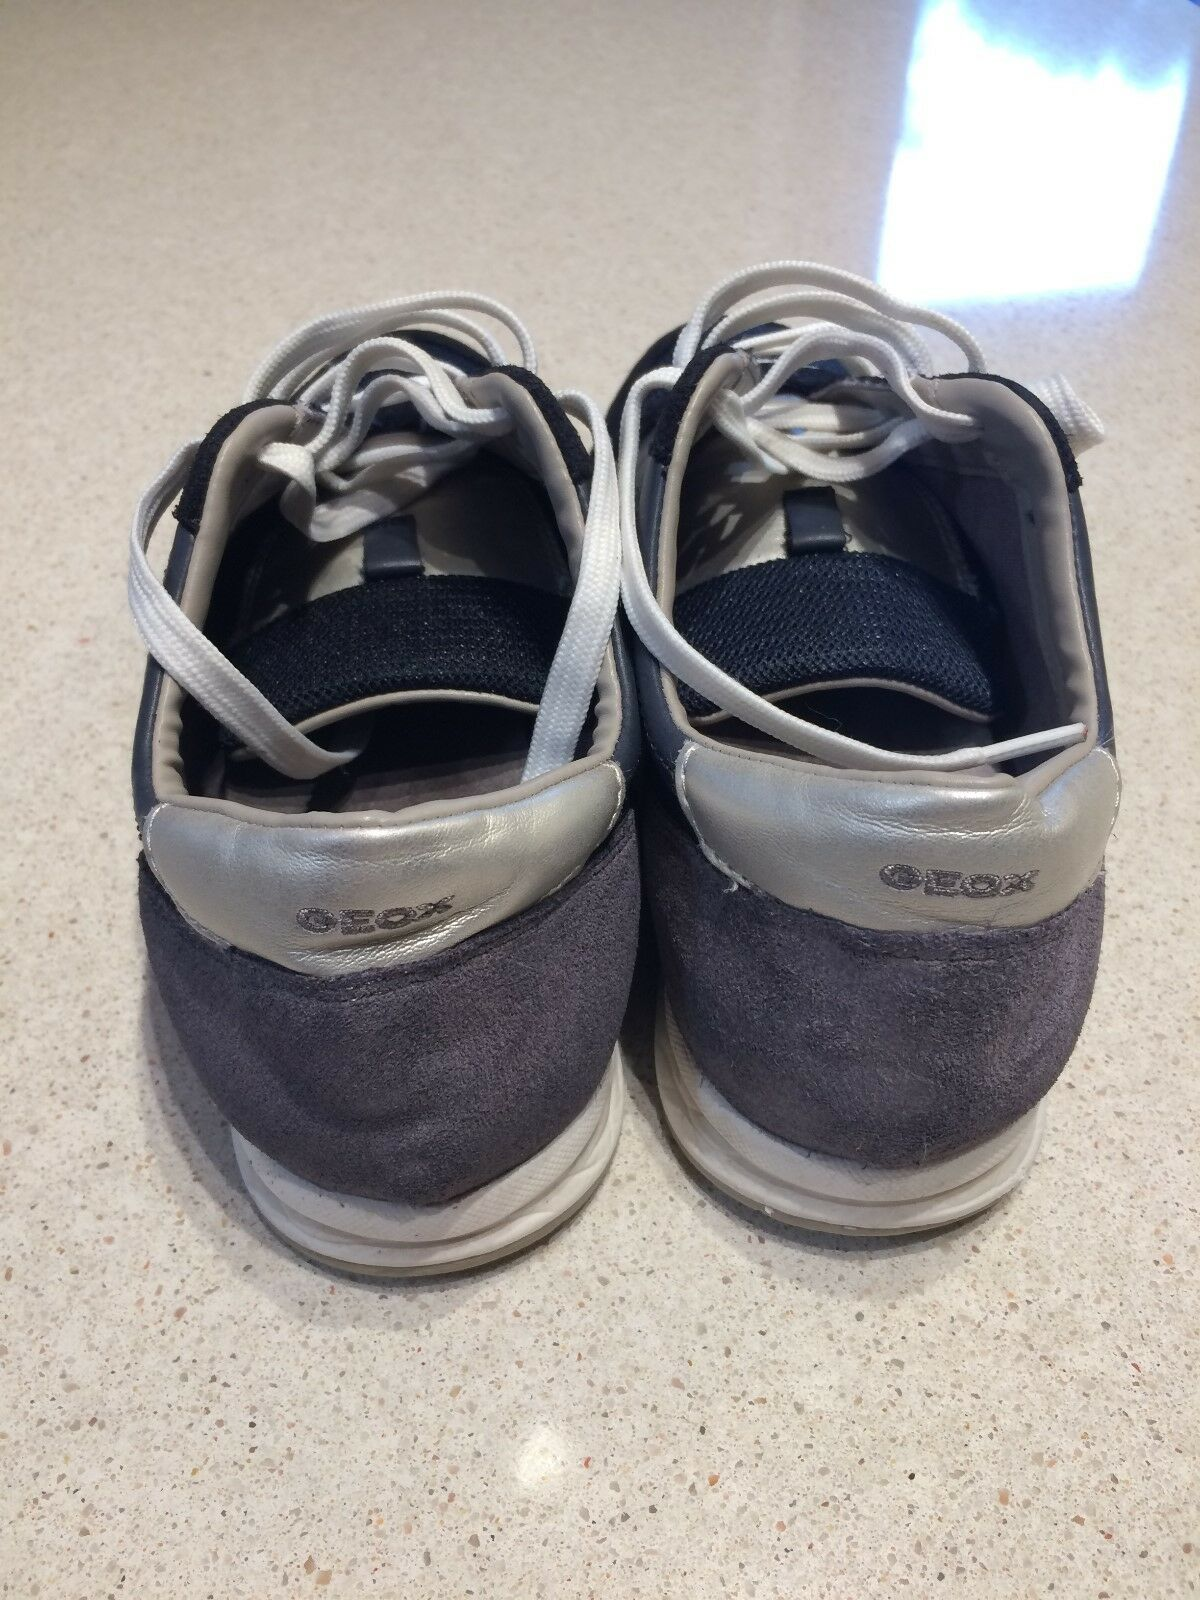 USED - Geox Geox Geox Womens D Avery B Trainers SIZE EU 38, US 8 382d62